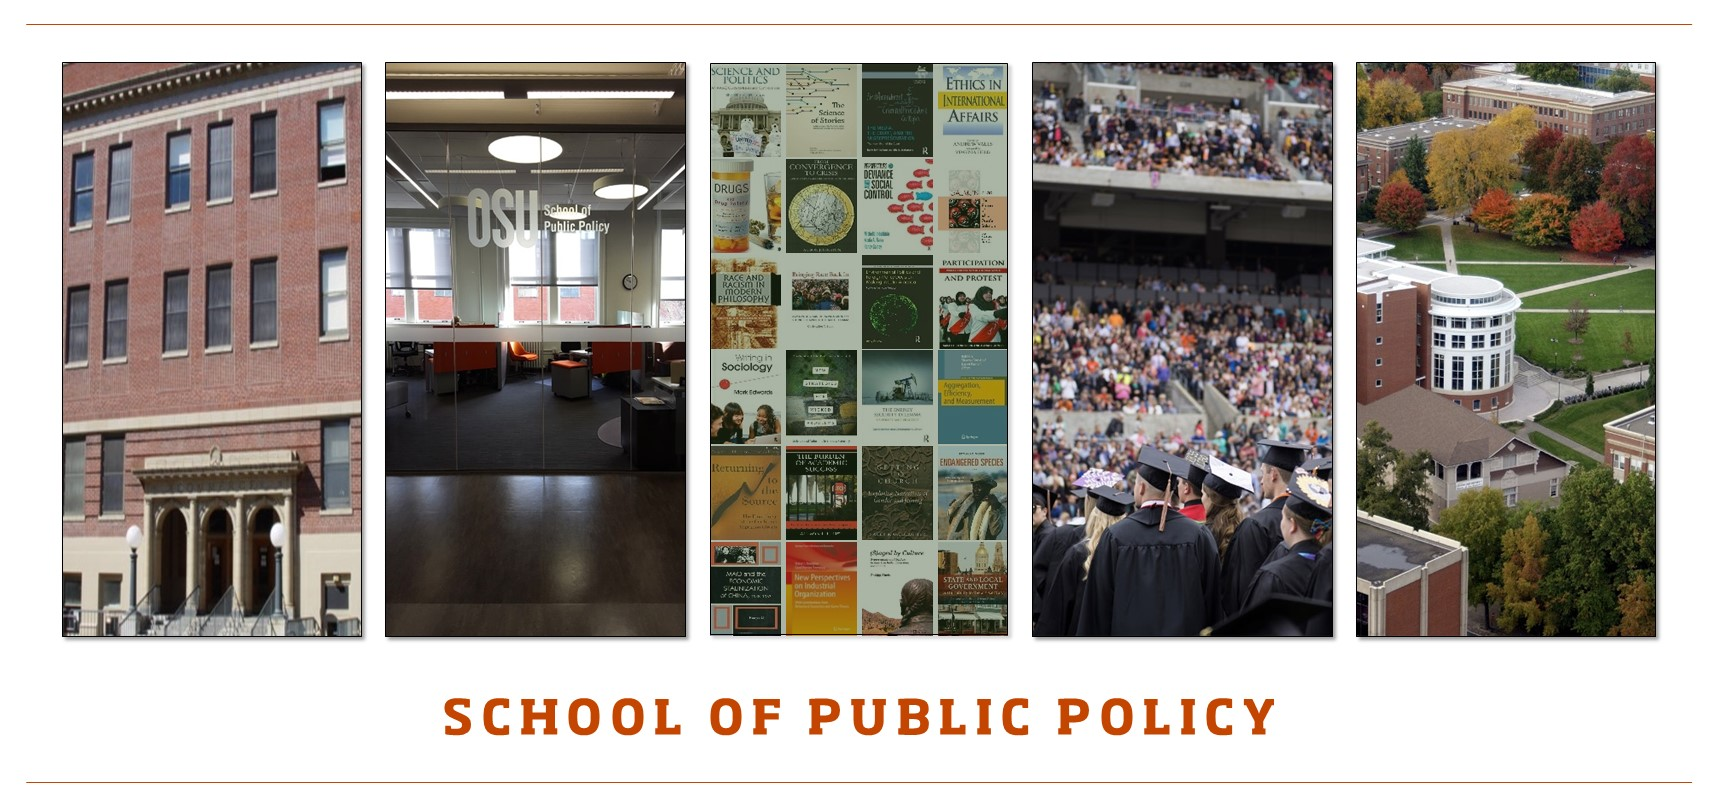 School of Public Policy